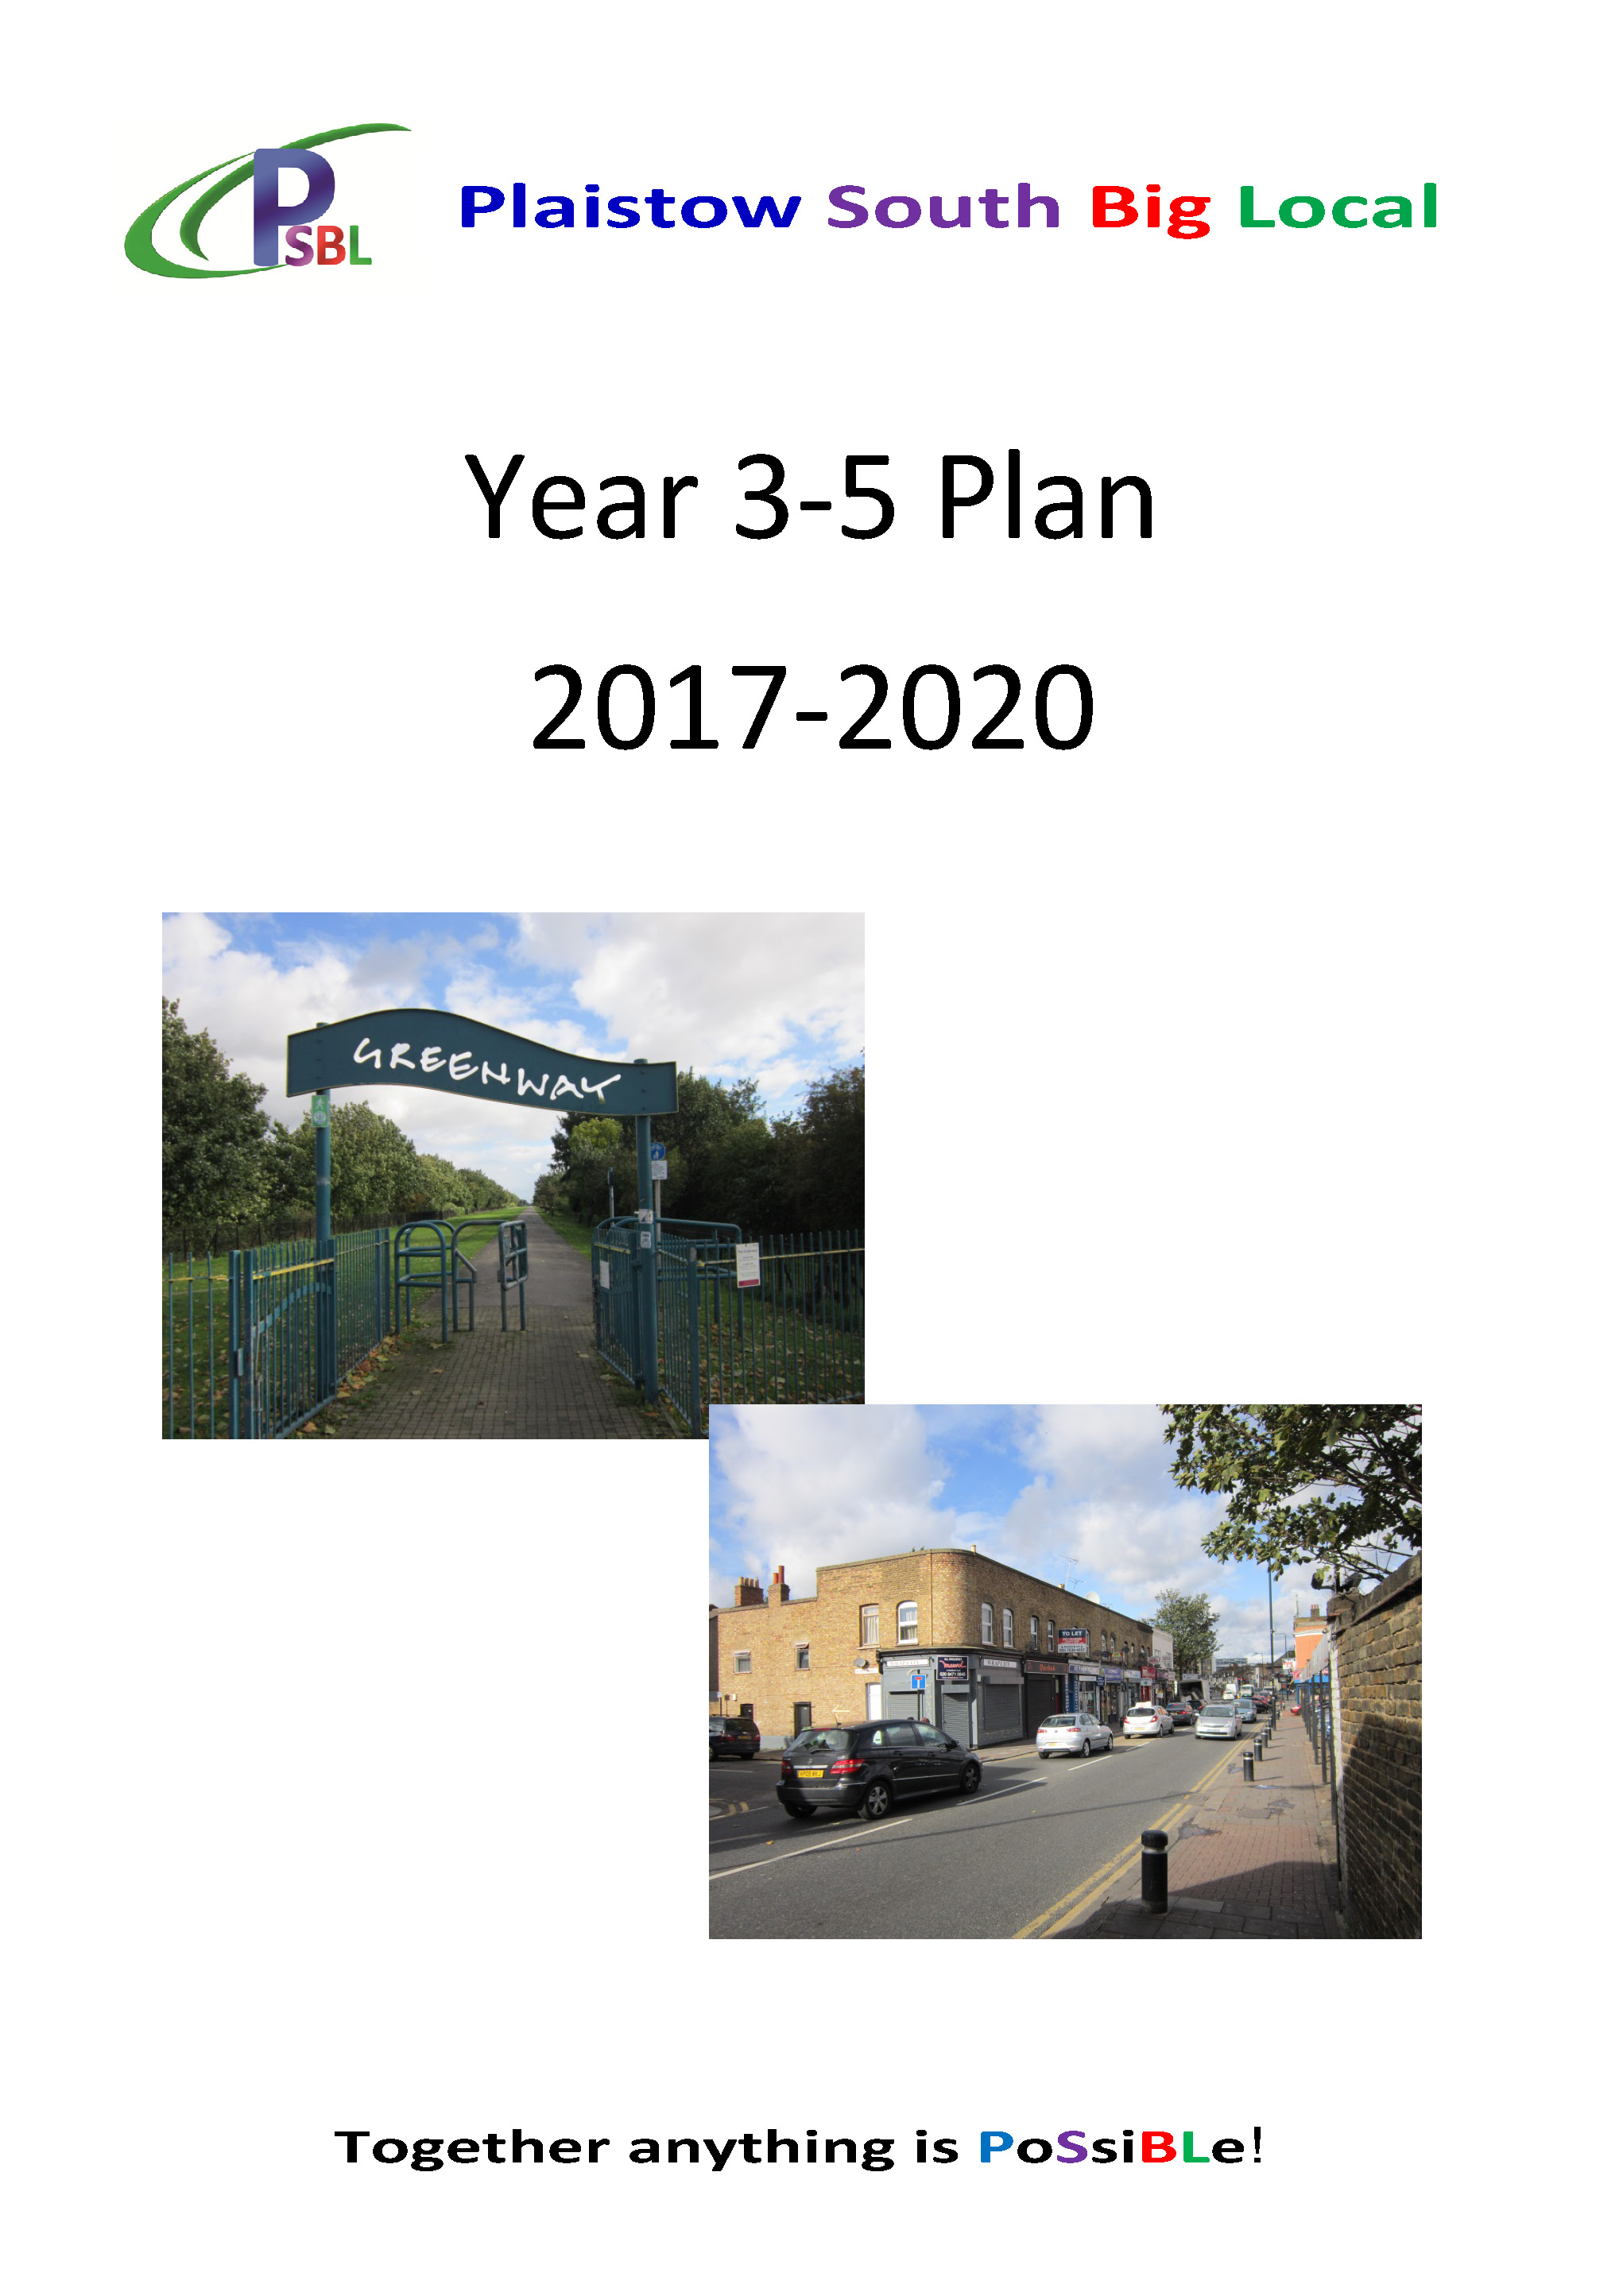 https://www.plaistowsouthbiglocal.org.uk/wp-content/uploads/2017/04/PSBL-Year-3-5-Plan_Page_01.jpg